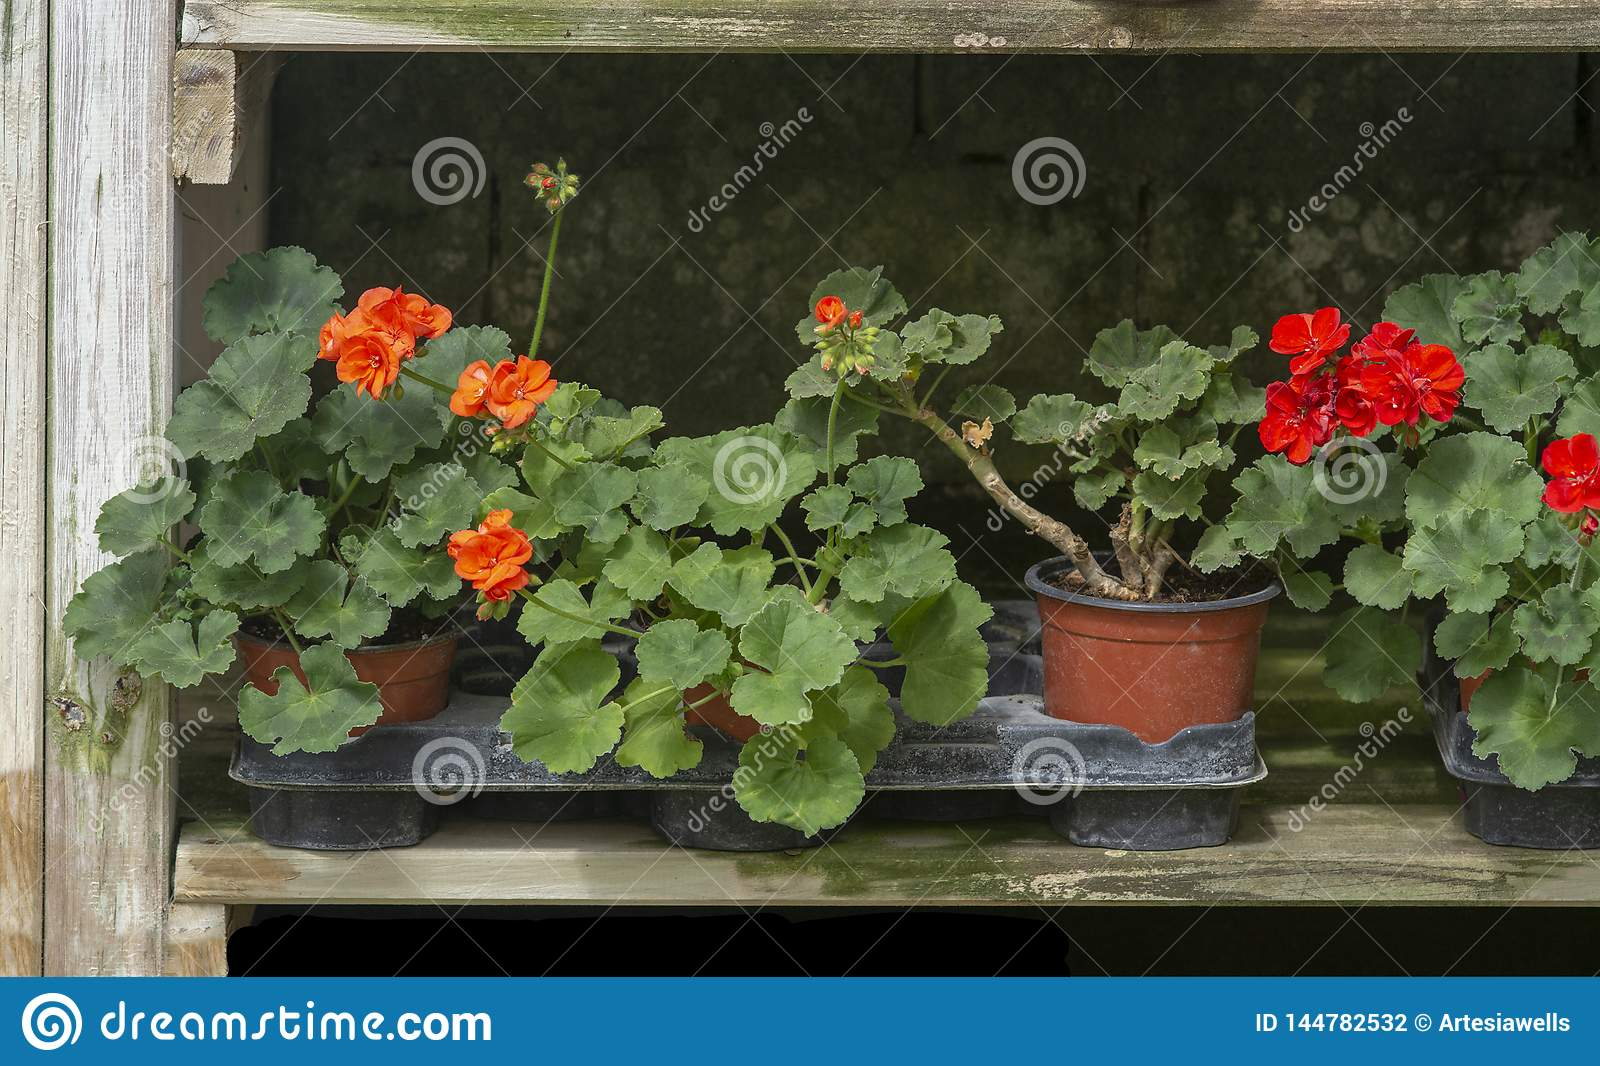 Red geranium flowers in pots